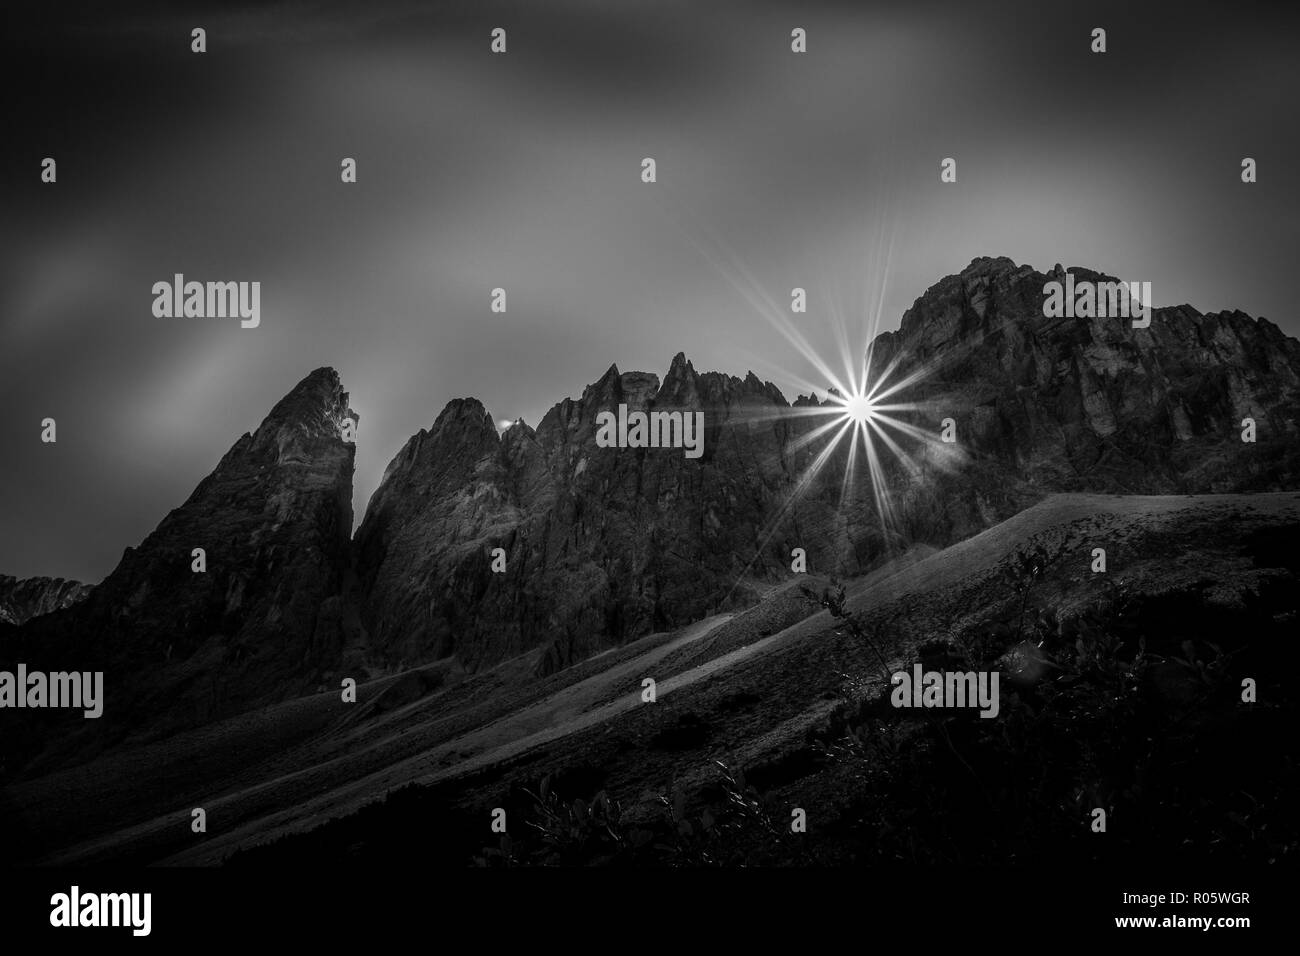 Black and white effect of morning sun rising above Cima Una dolomite peaks South Tyrol, Italy - Stock Image